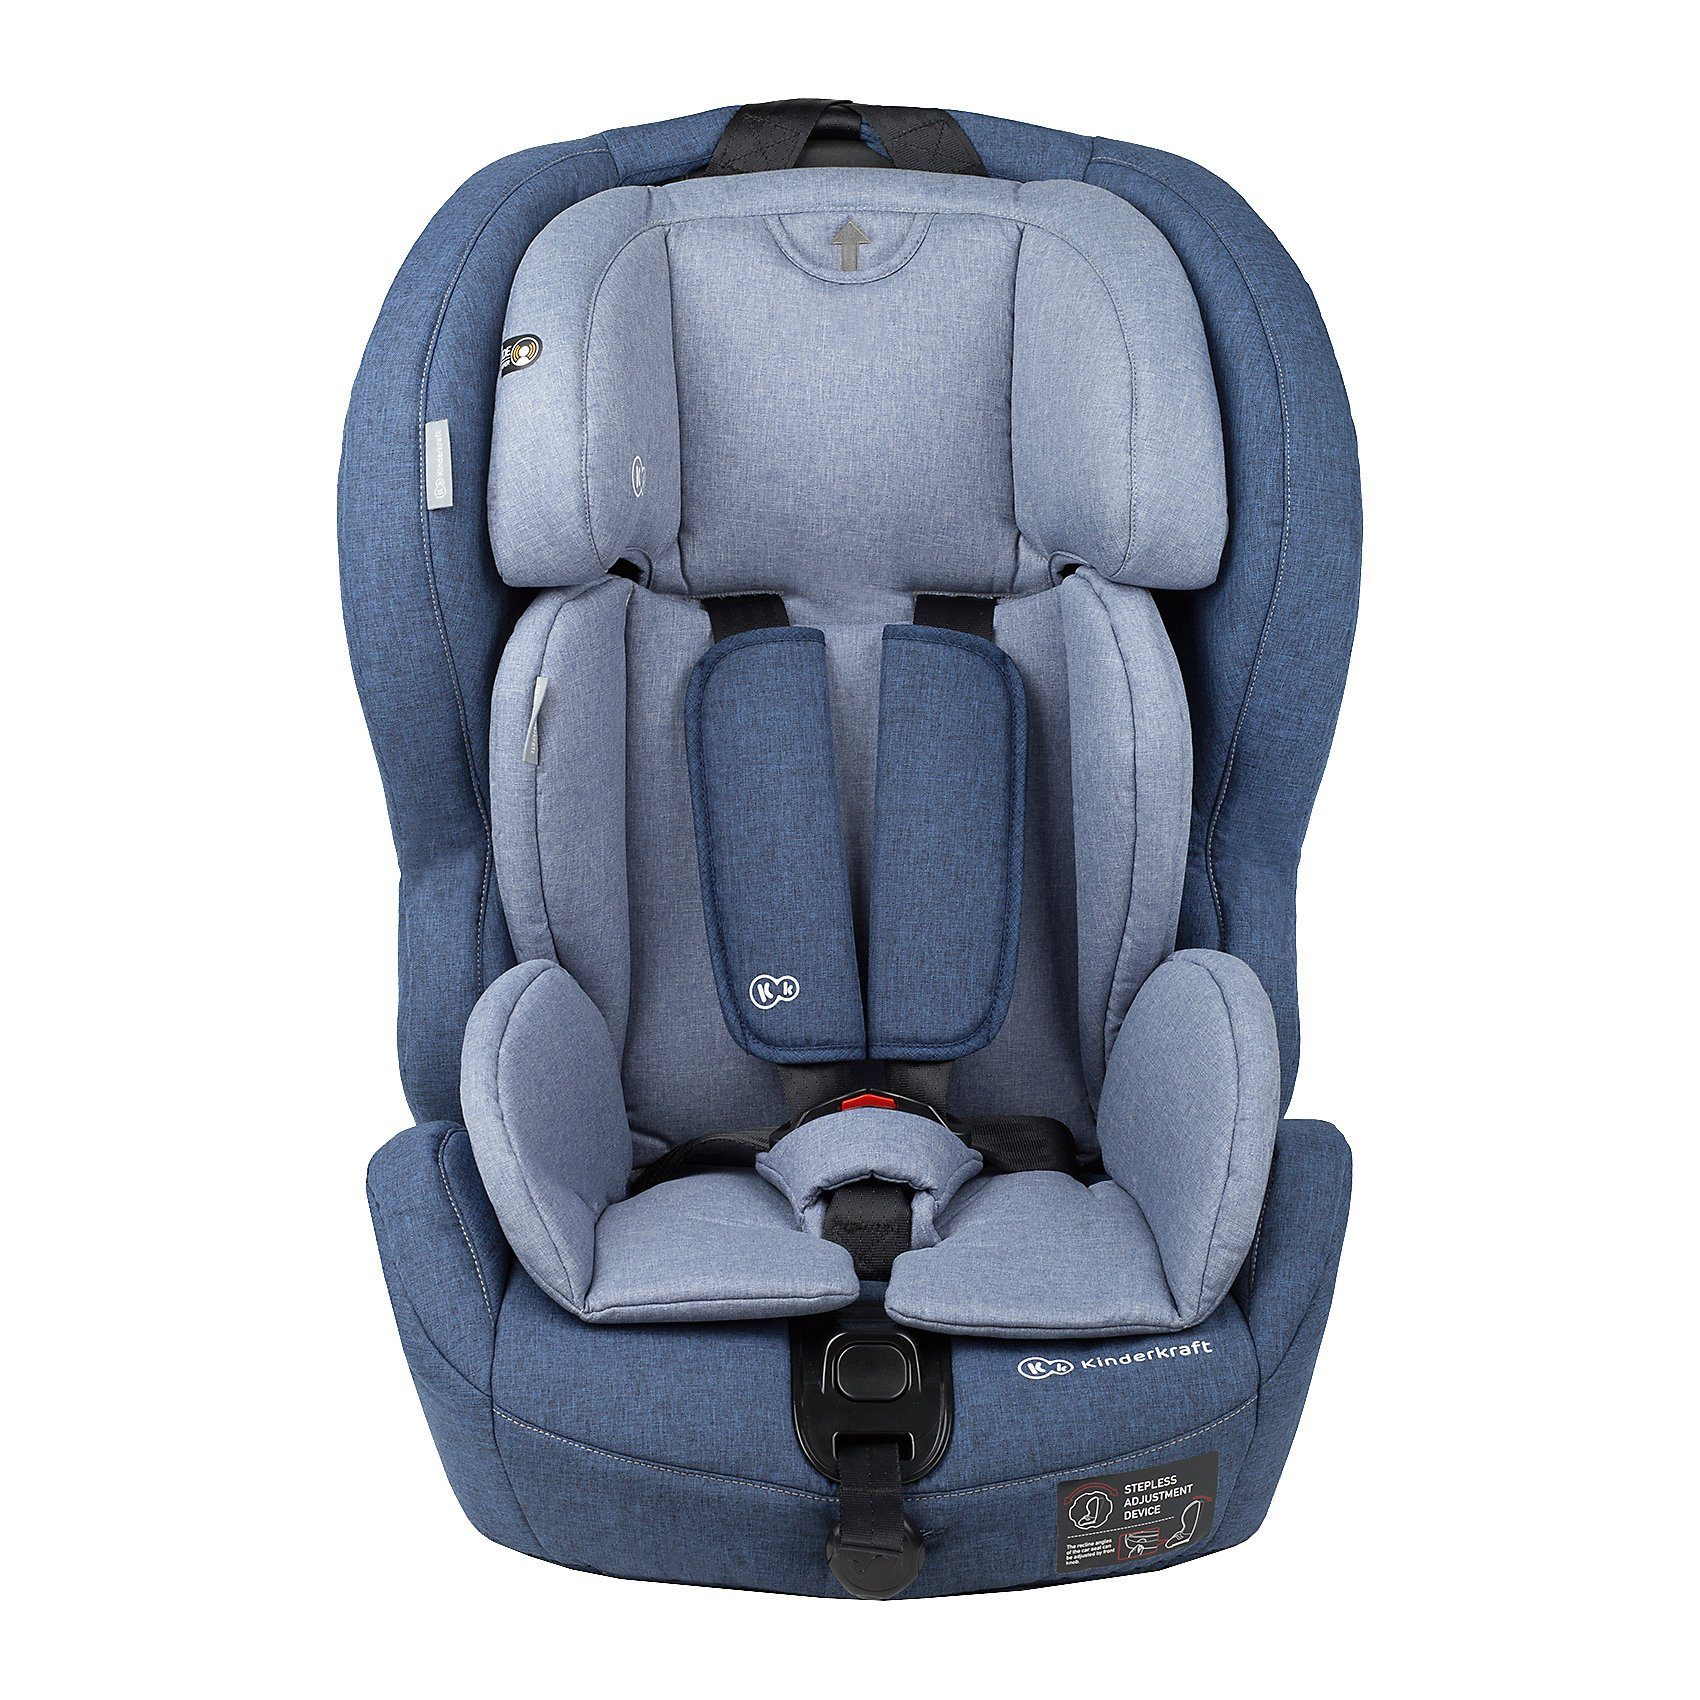 Kinderkraft Kinderautositz Safety-Fix, blau